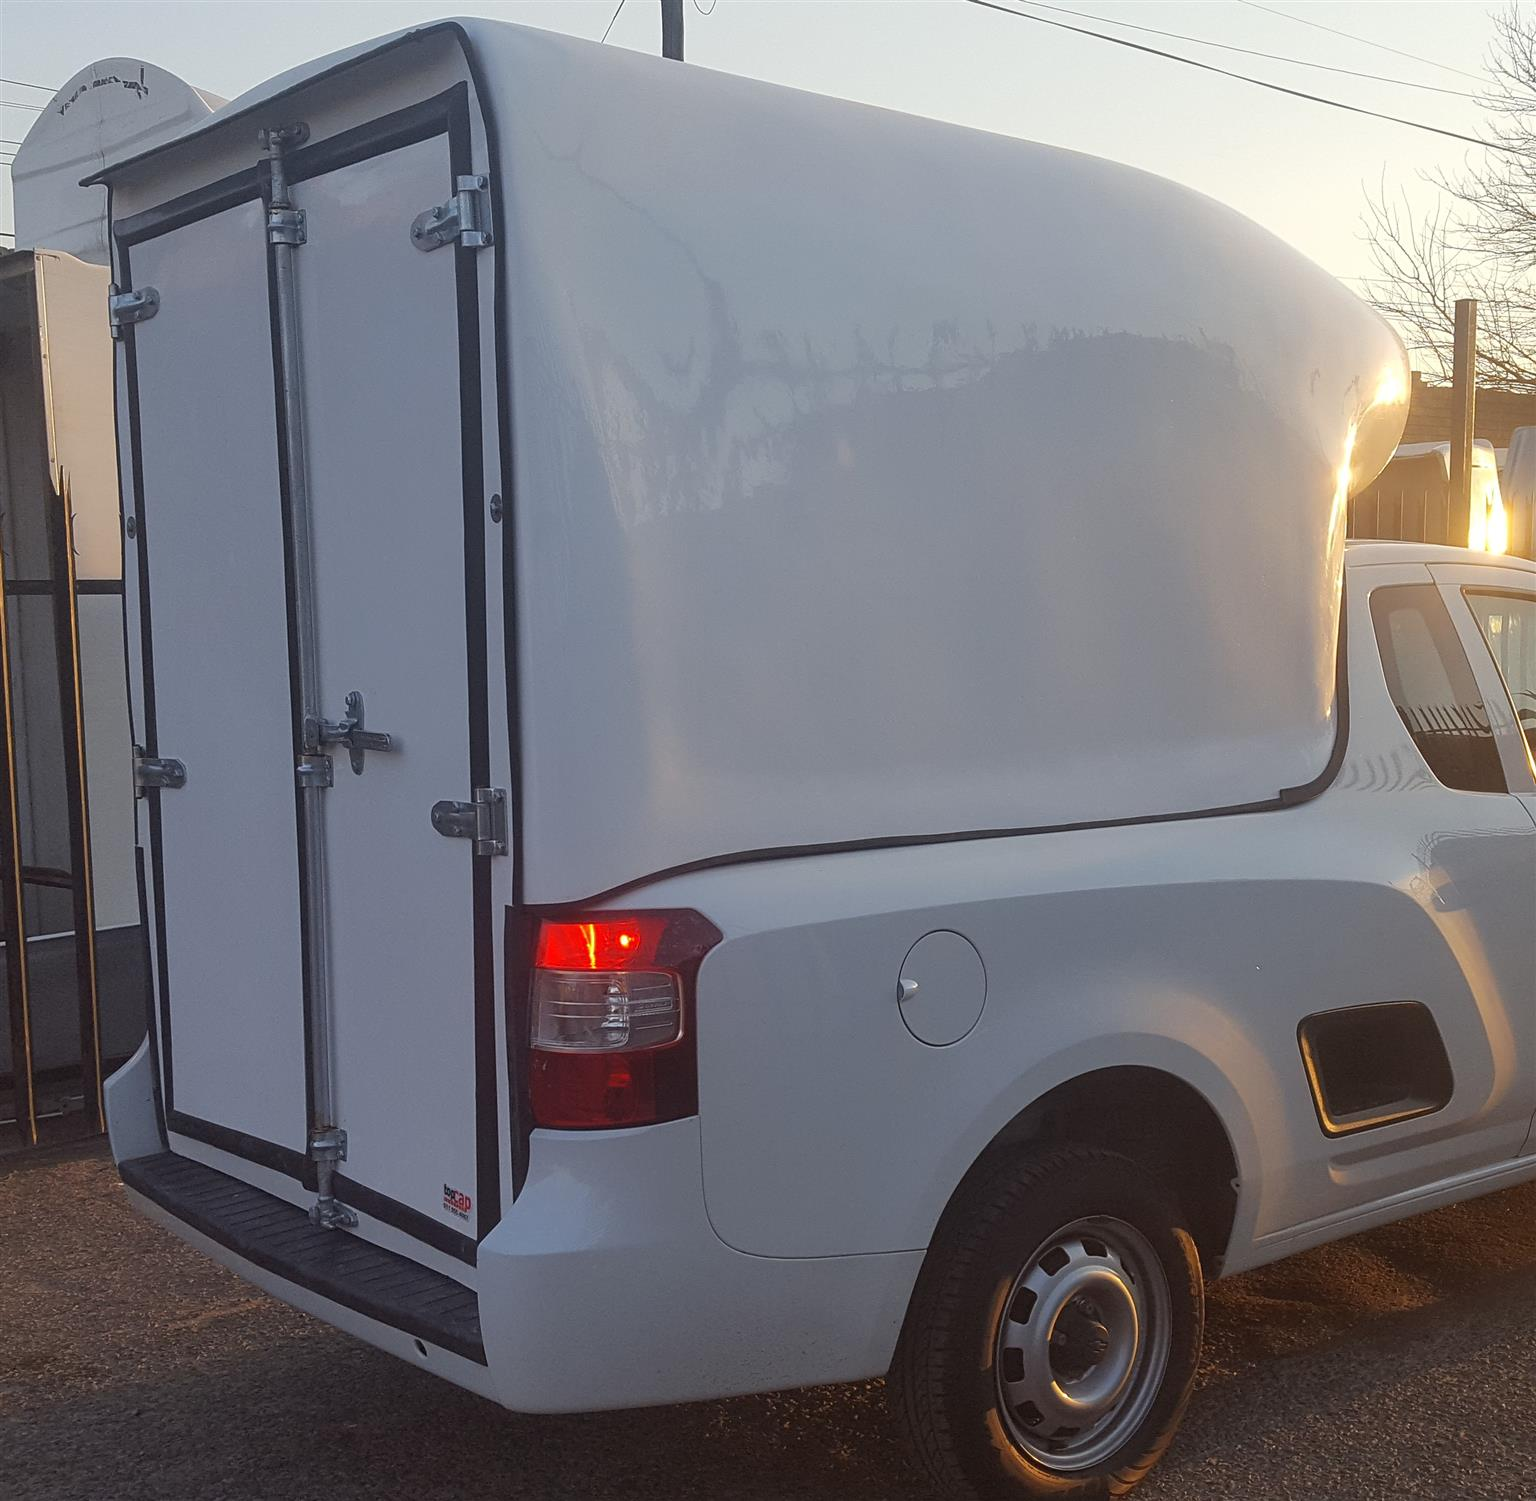 BRAND NEW CHEVROLET UTILITY HI VOLUME S/SAVER COURIER BAKKIE CANOPY FOR SALES!